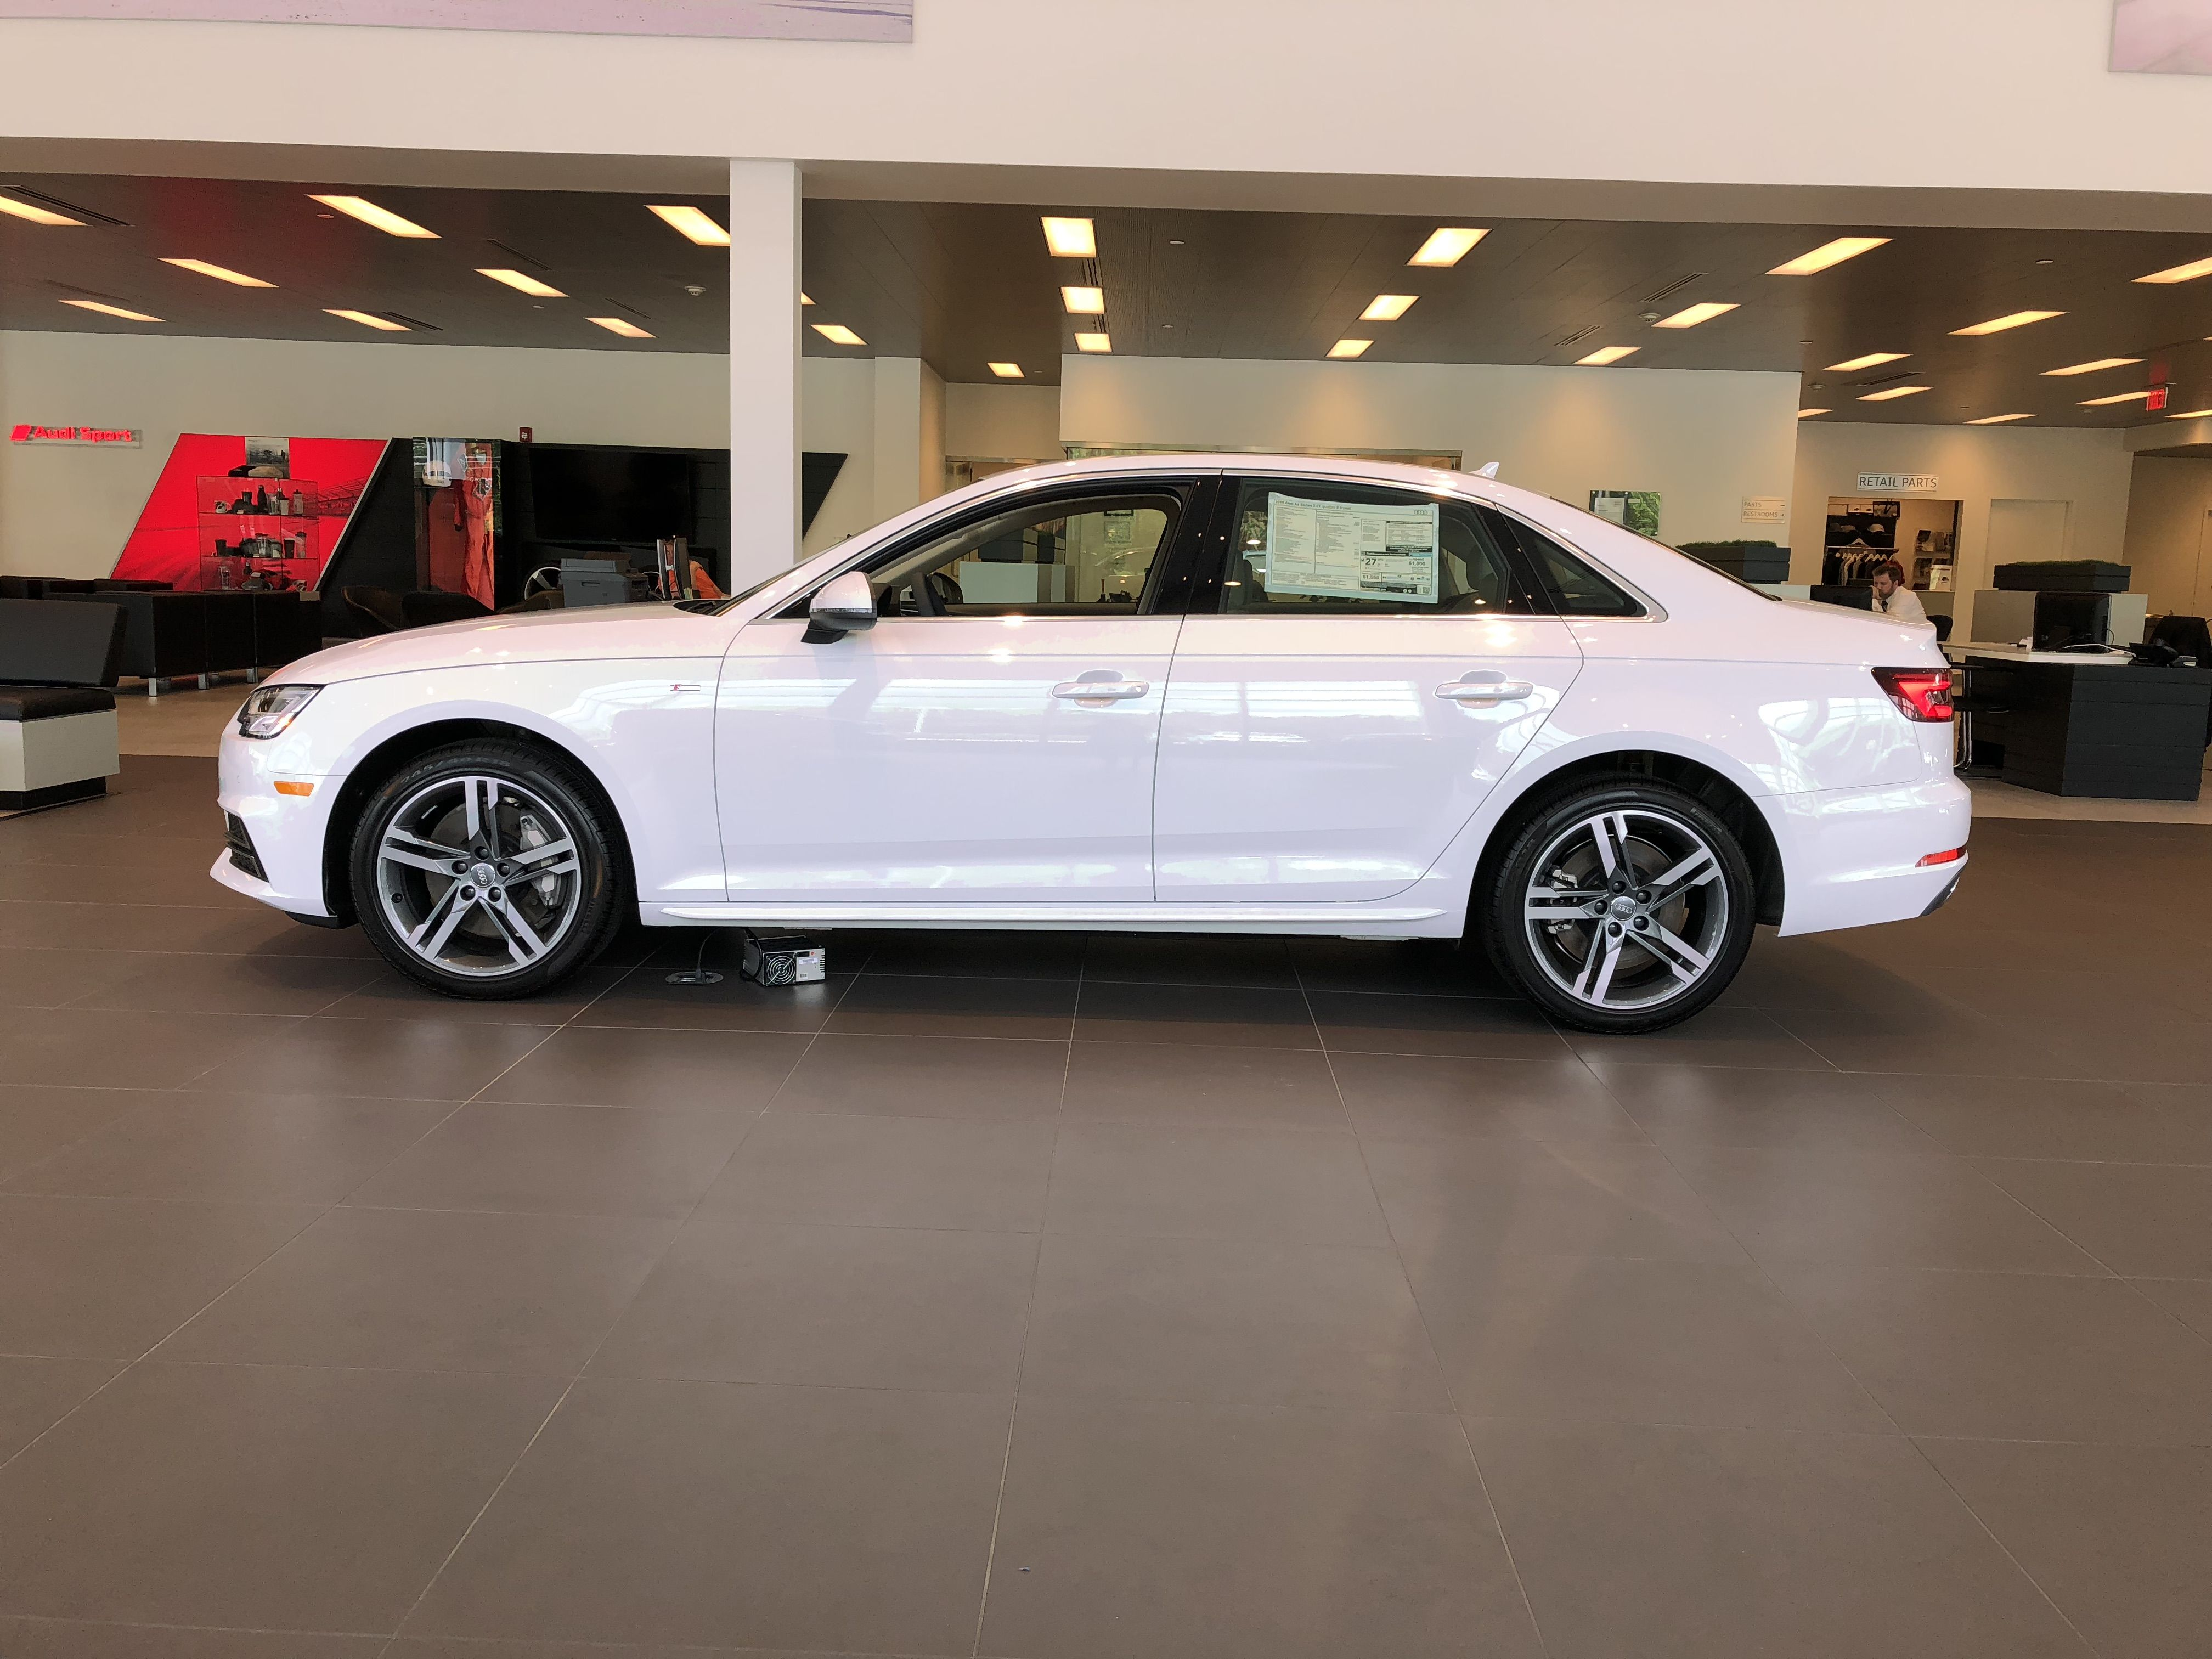 Full side view view of Ibis White Audi A4 located at Audi of